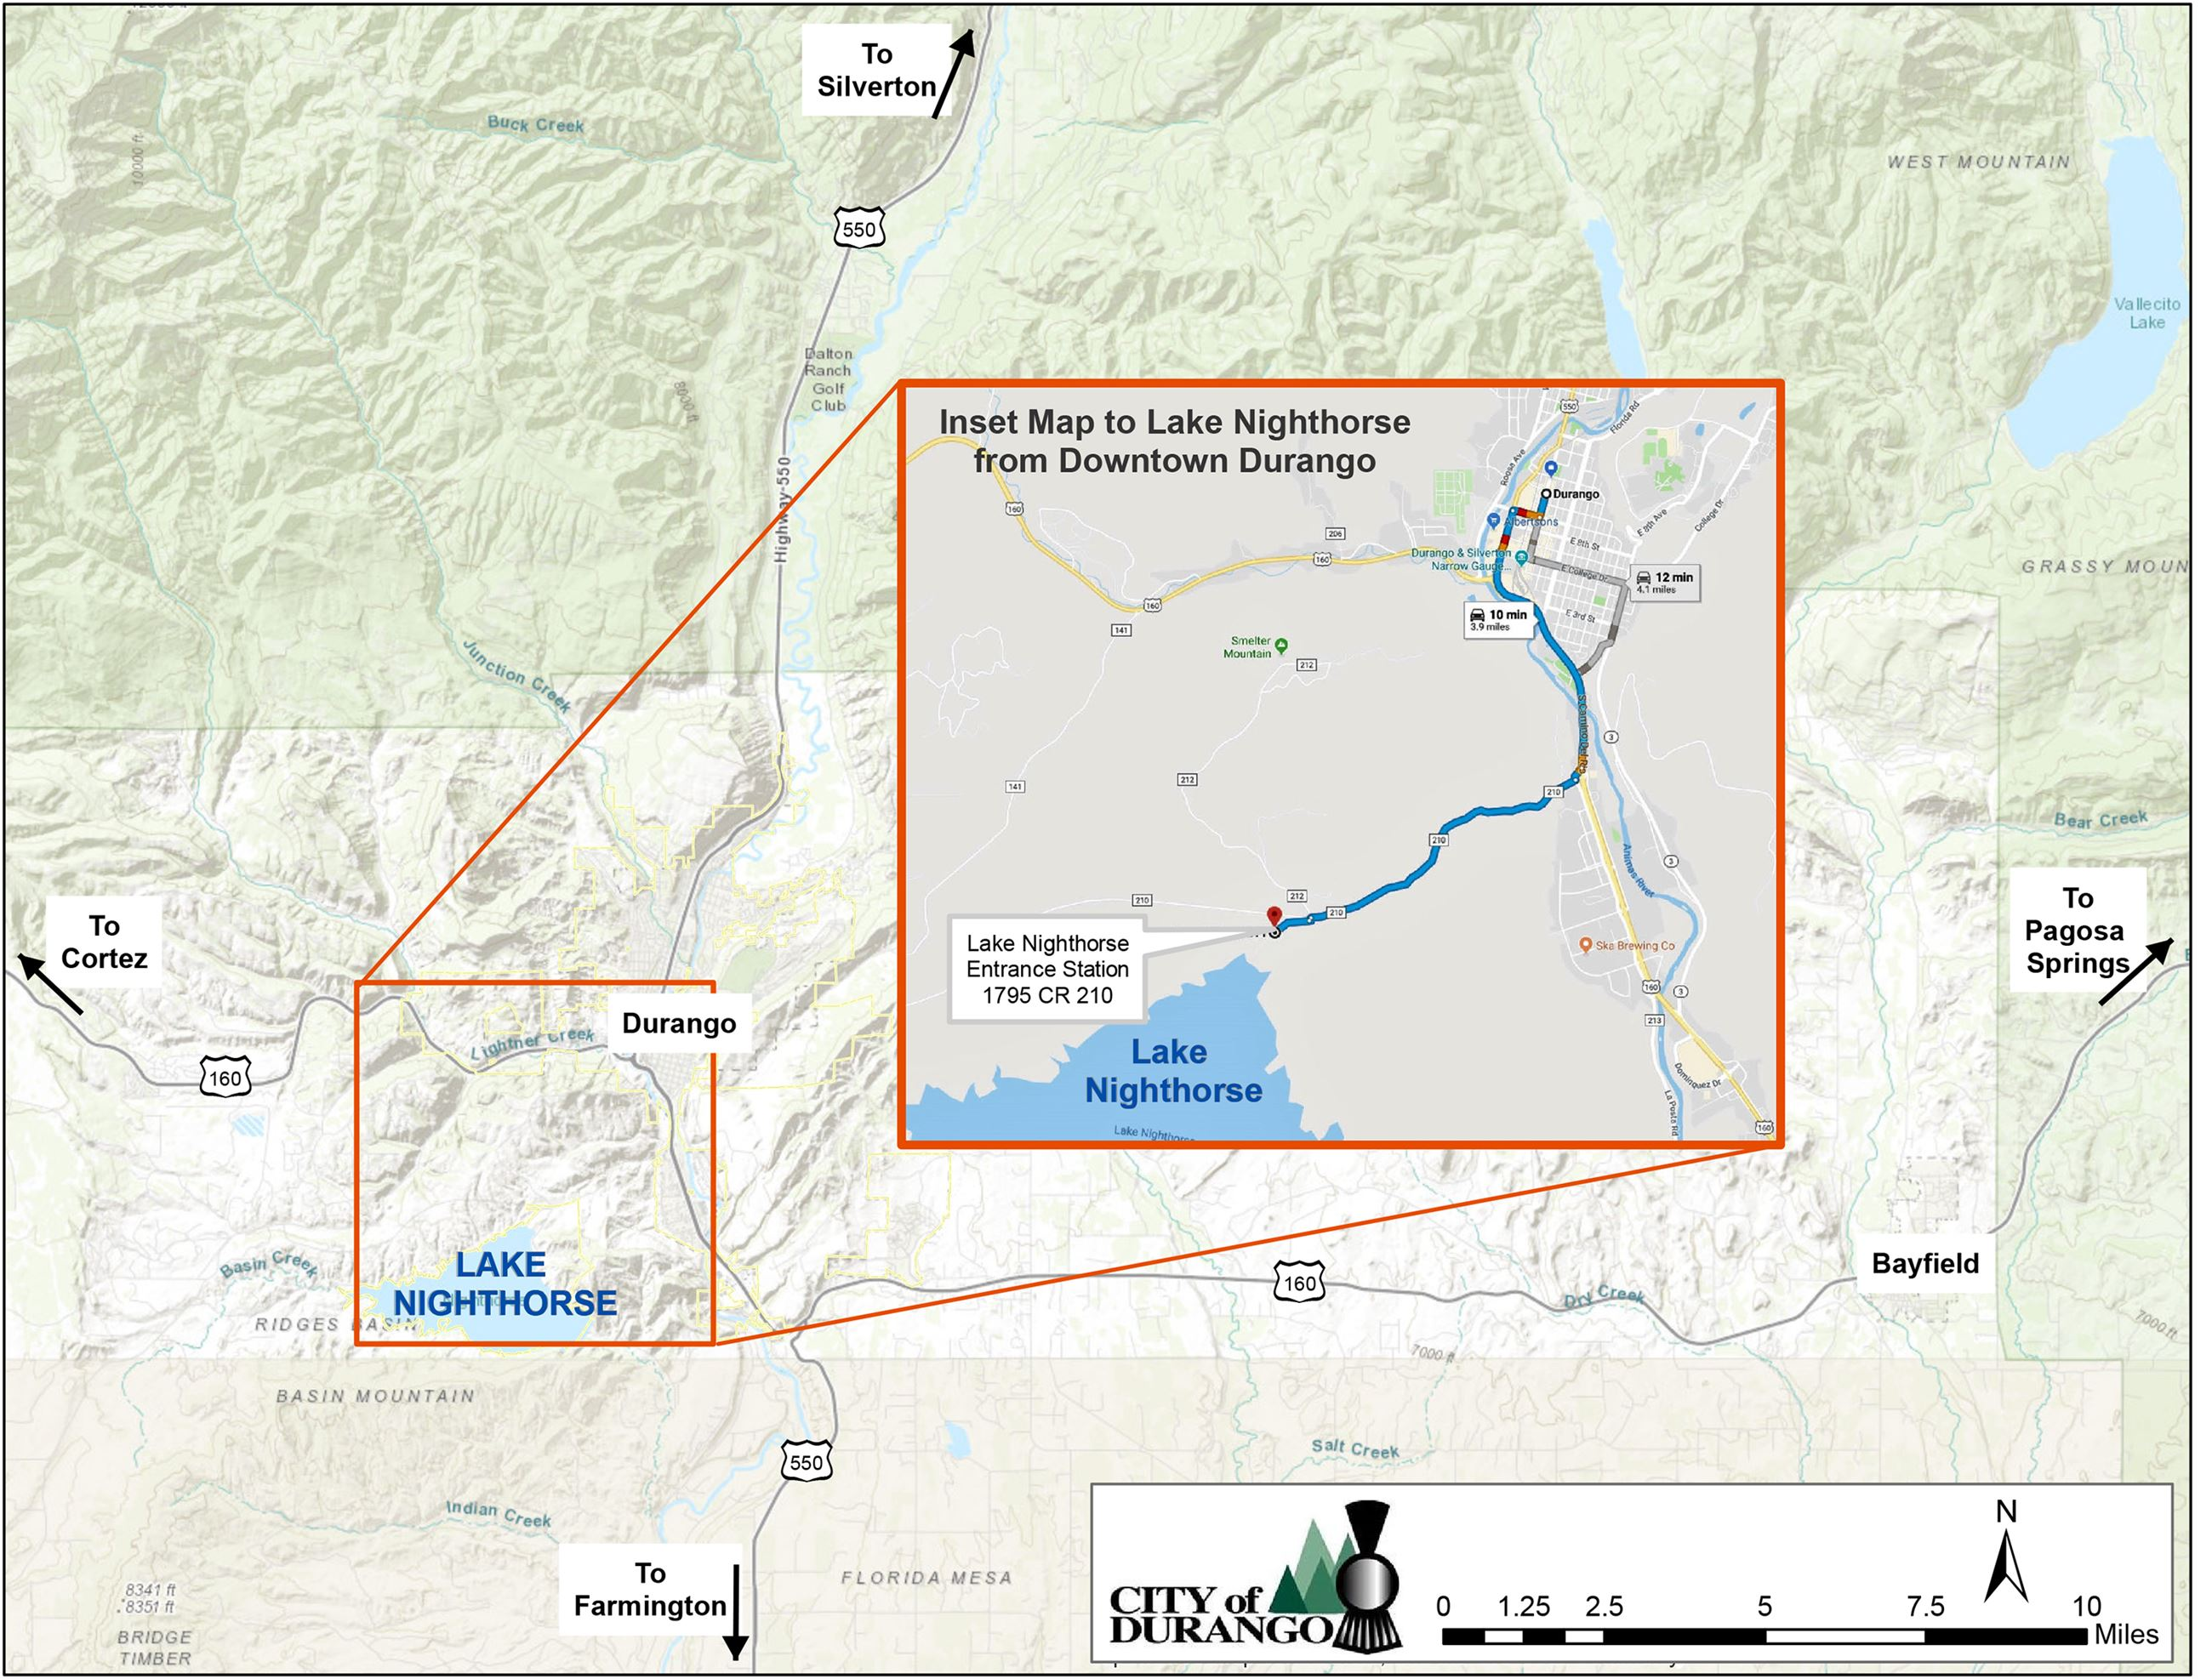 Directions to Lake Nighthorse from Downtown Durango